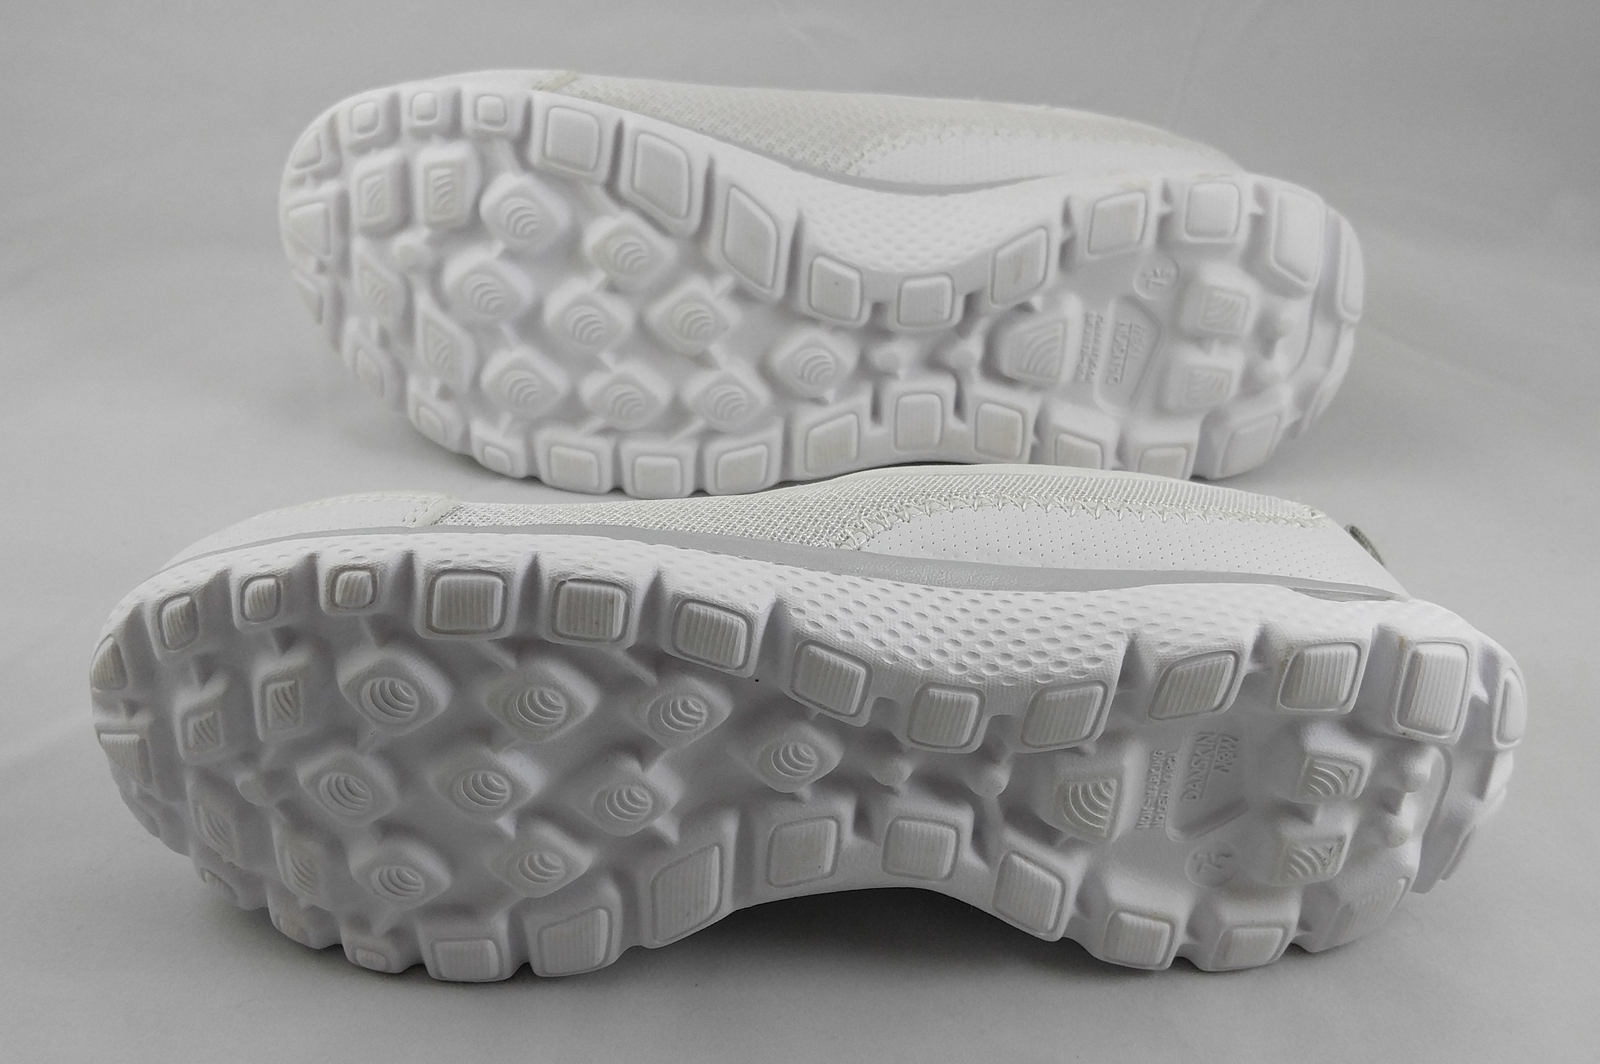 e17358b9a25 Danskin Now Women s White Memory Foam Mesh Slip-On Athletic Shoe Size 7.5